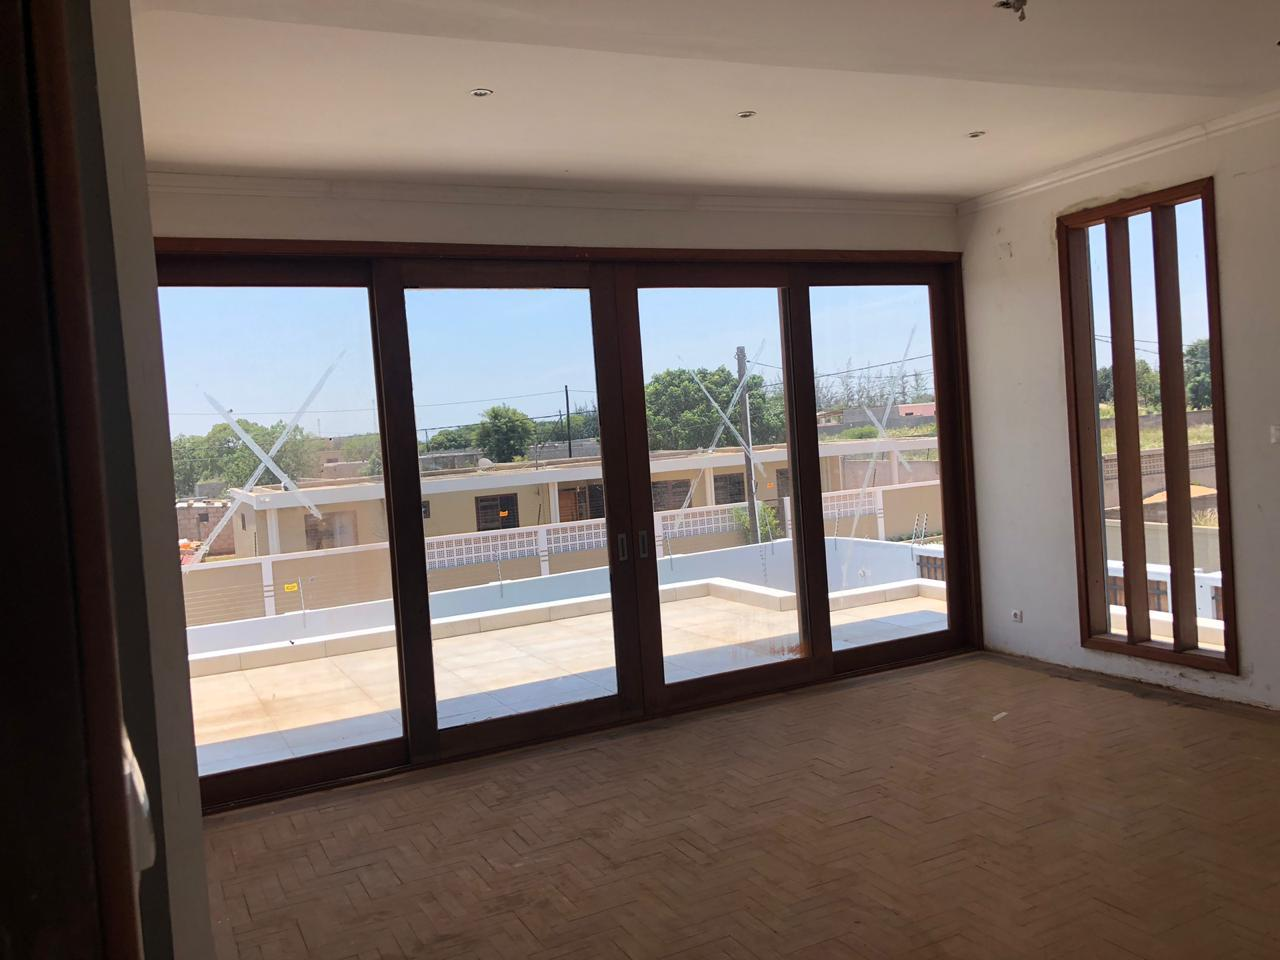 5 Bedroom House For Sale in Matola Central